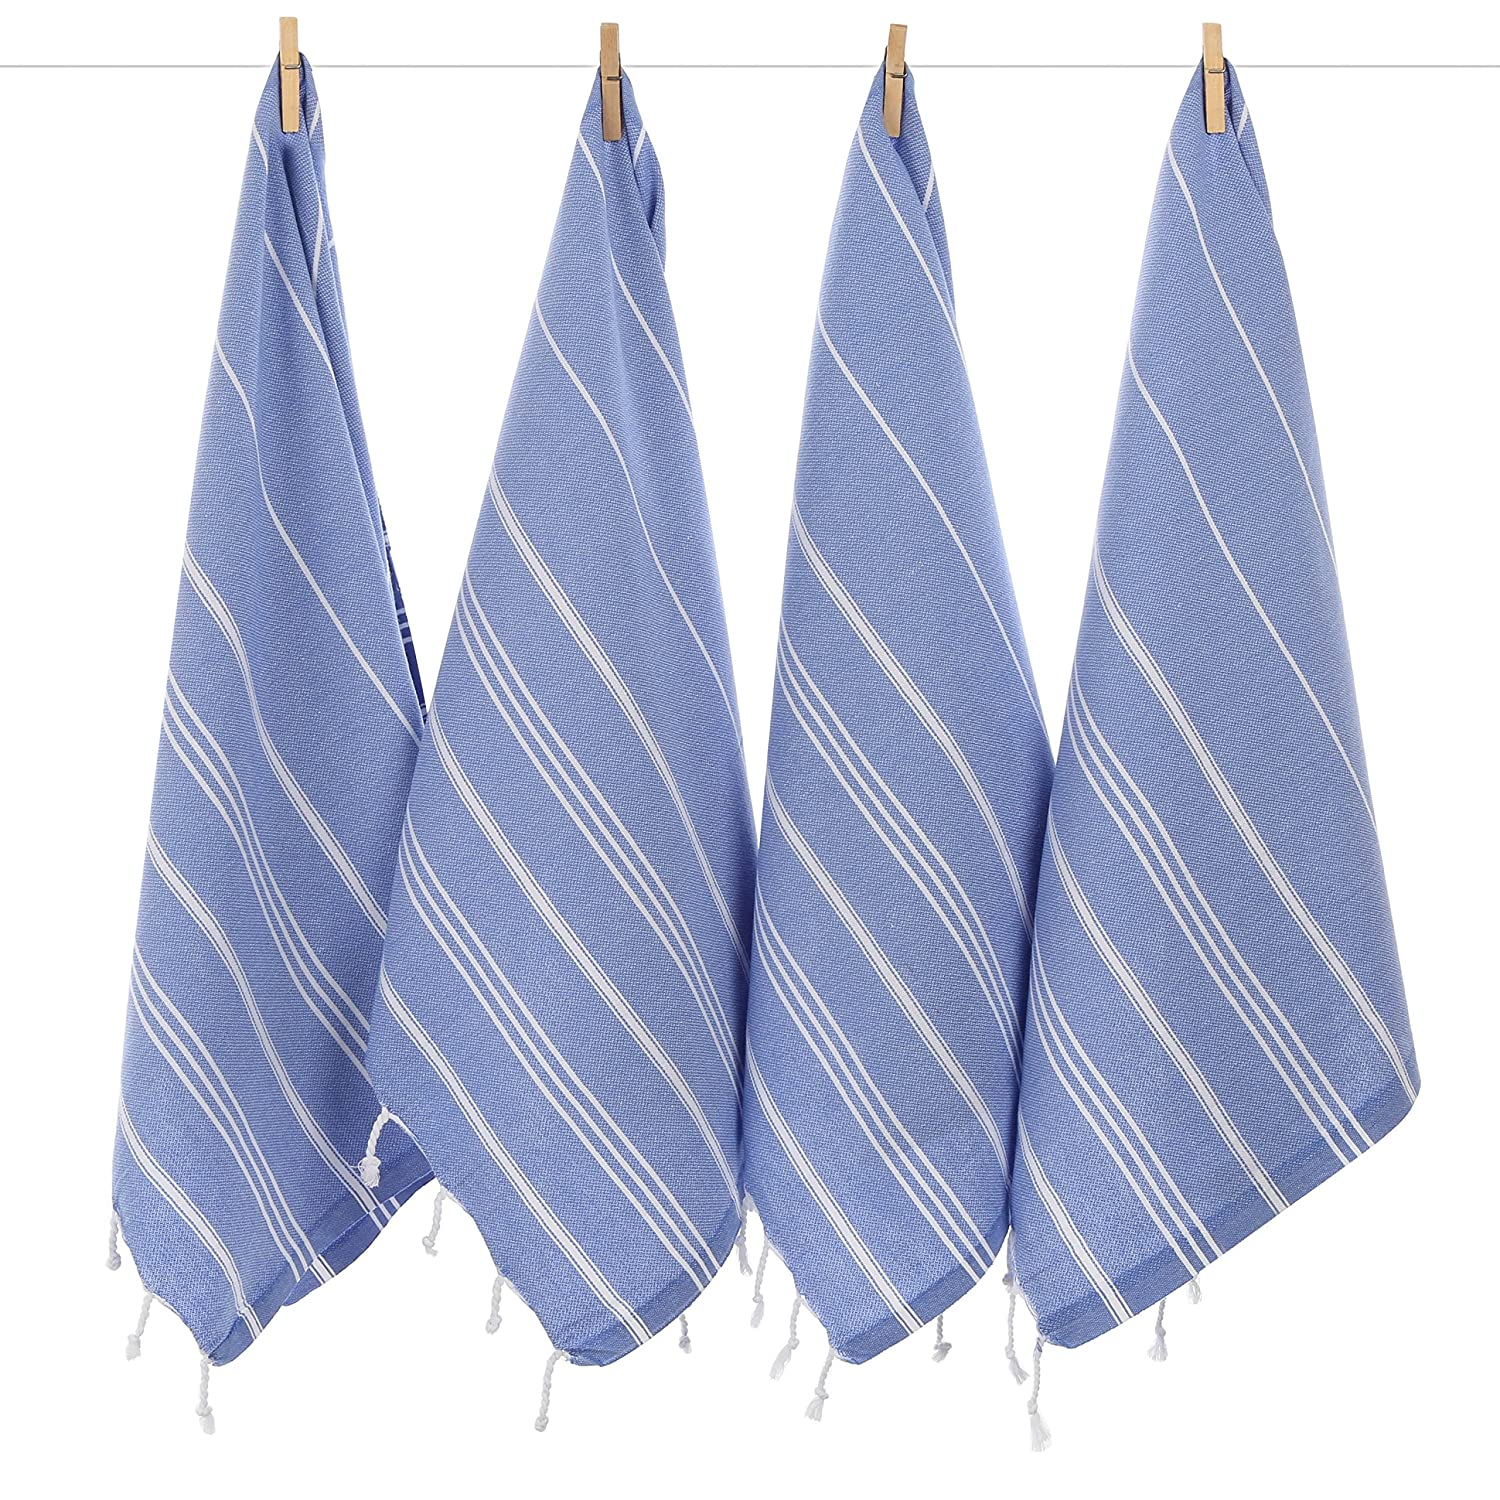 CACALA Pure Series - Set of 4 Turkish Peskir Hand & Face Towels Blue